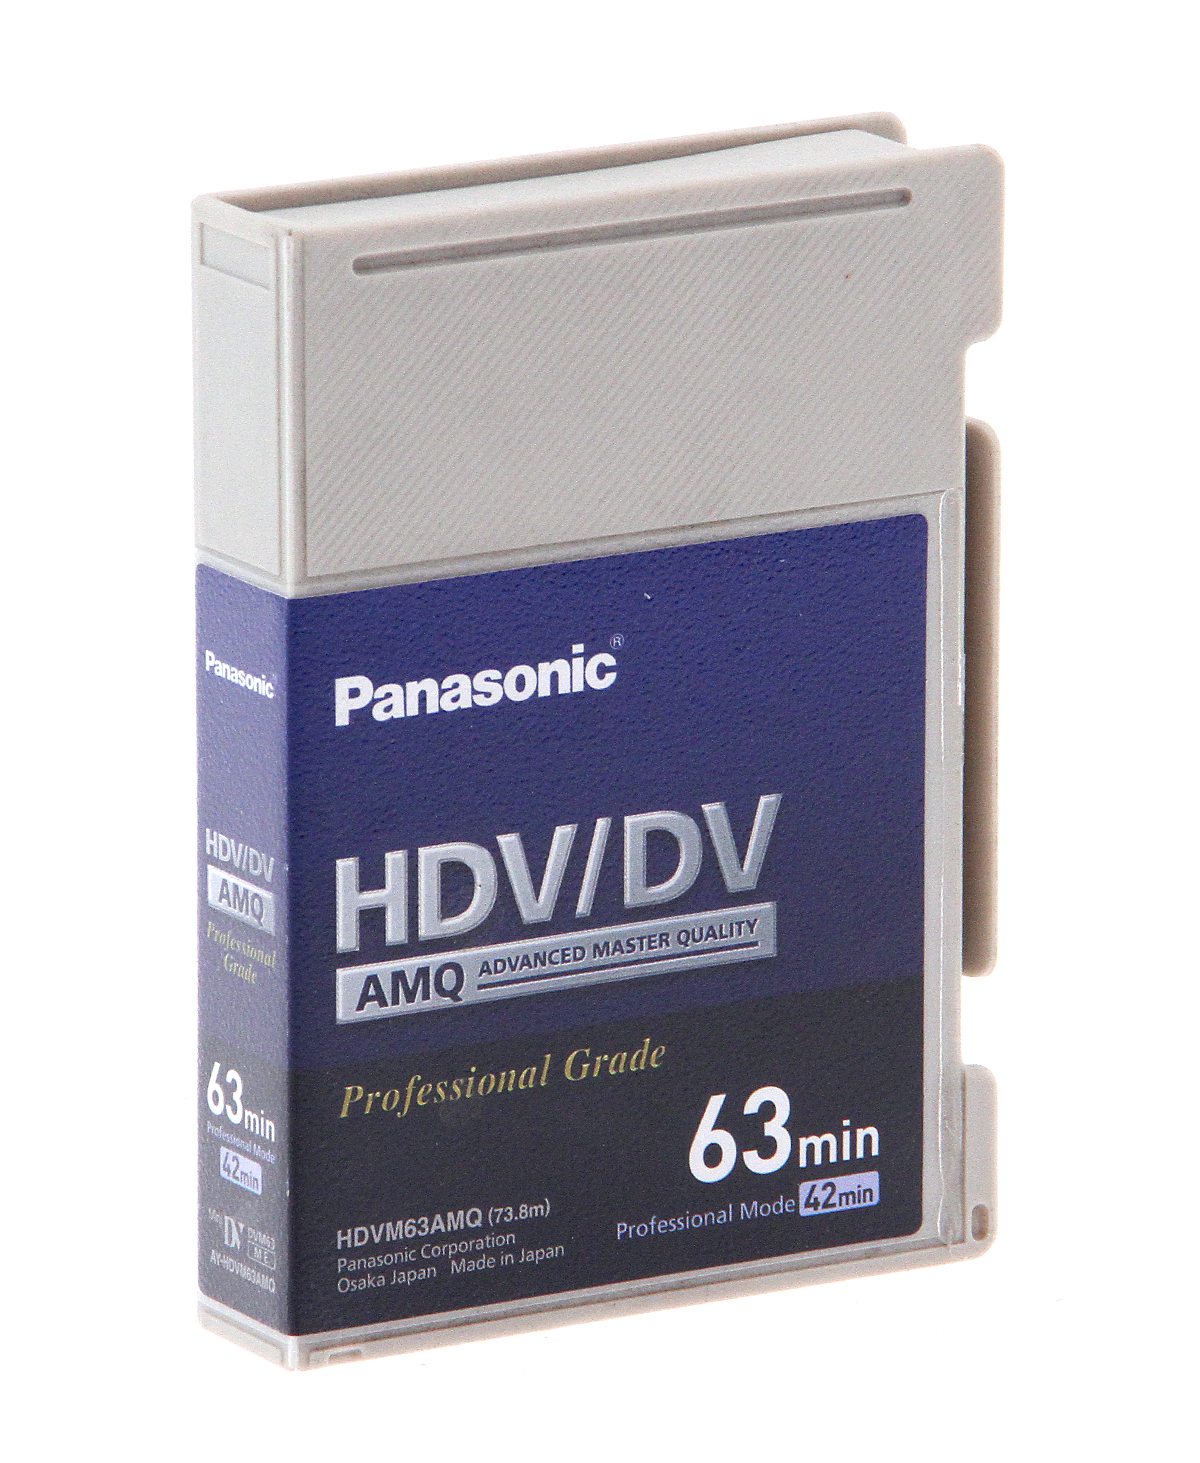 AY-HDVM63AMQ Mini HDV/DV/DVCAM Compatible Advanced Master Cassette